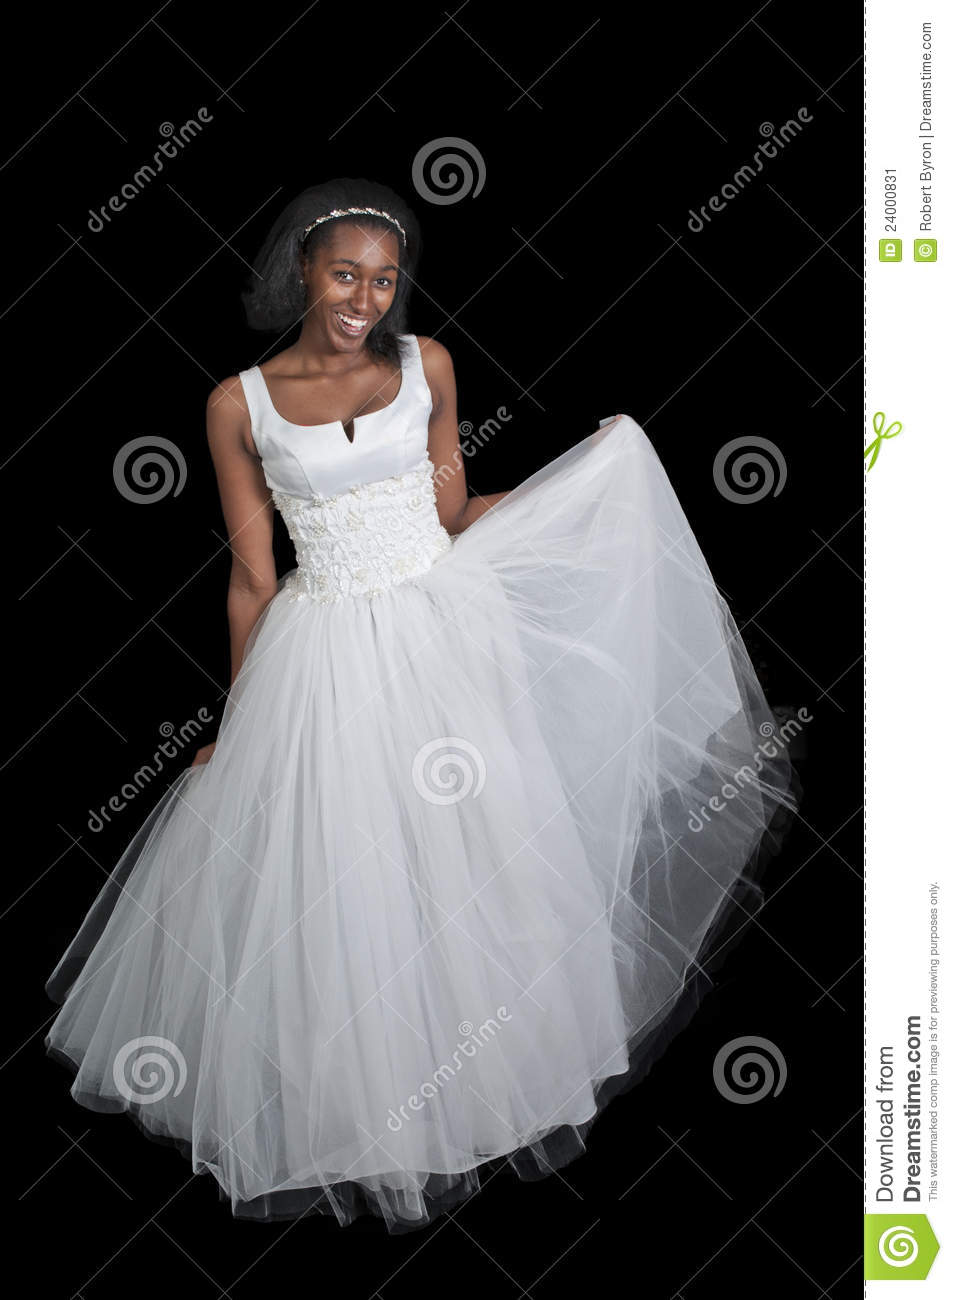 More similar stock images of ` Black woman in wedding dress `